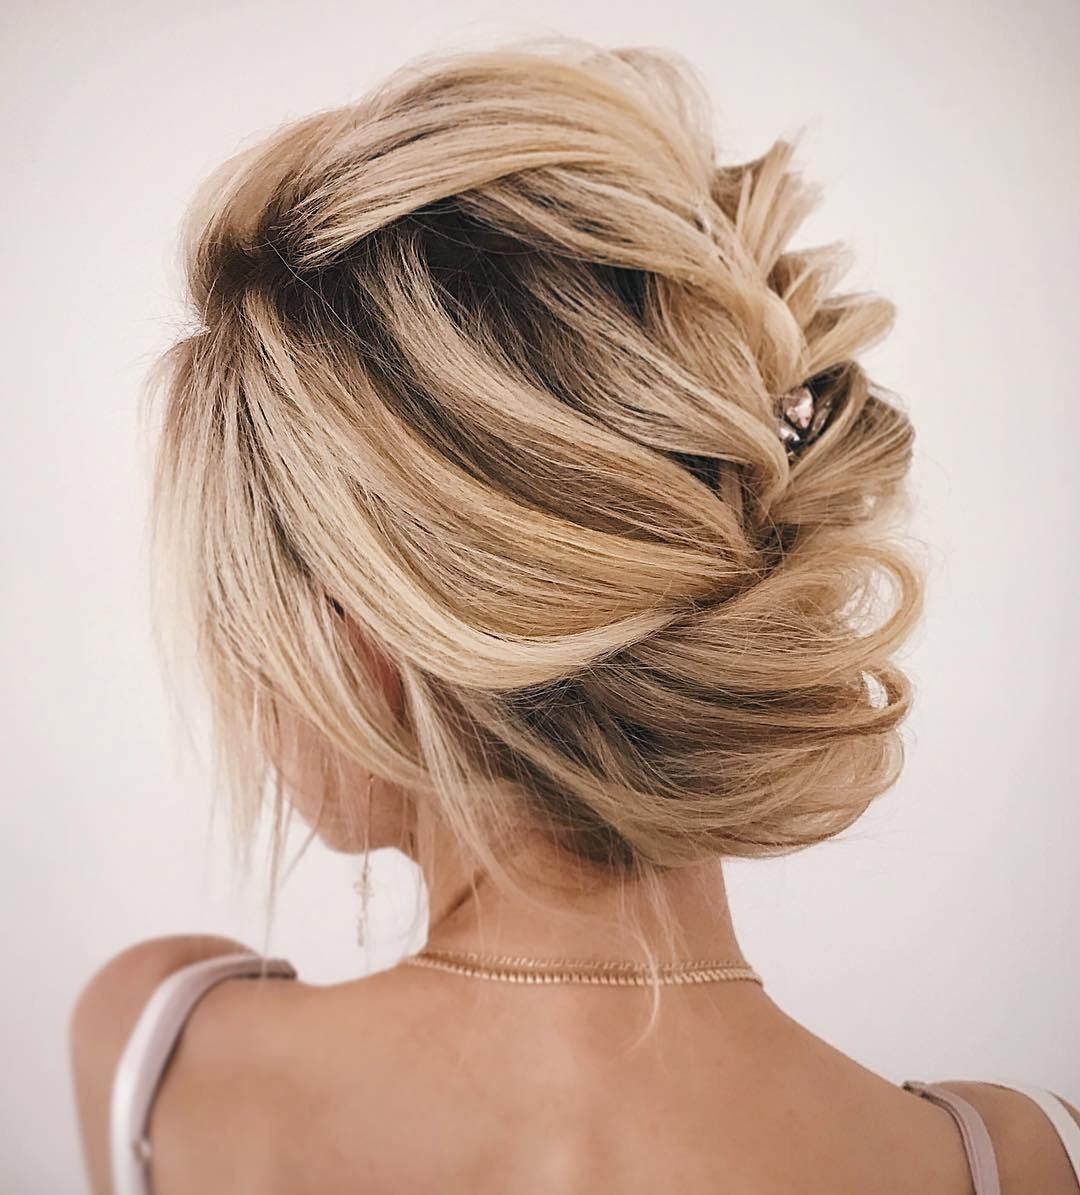 50 Wonderful Updos for Medium Hair to Inspire New Looks